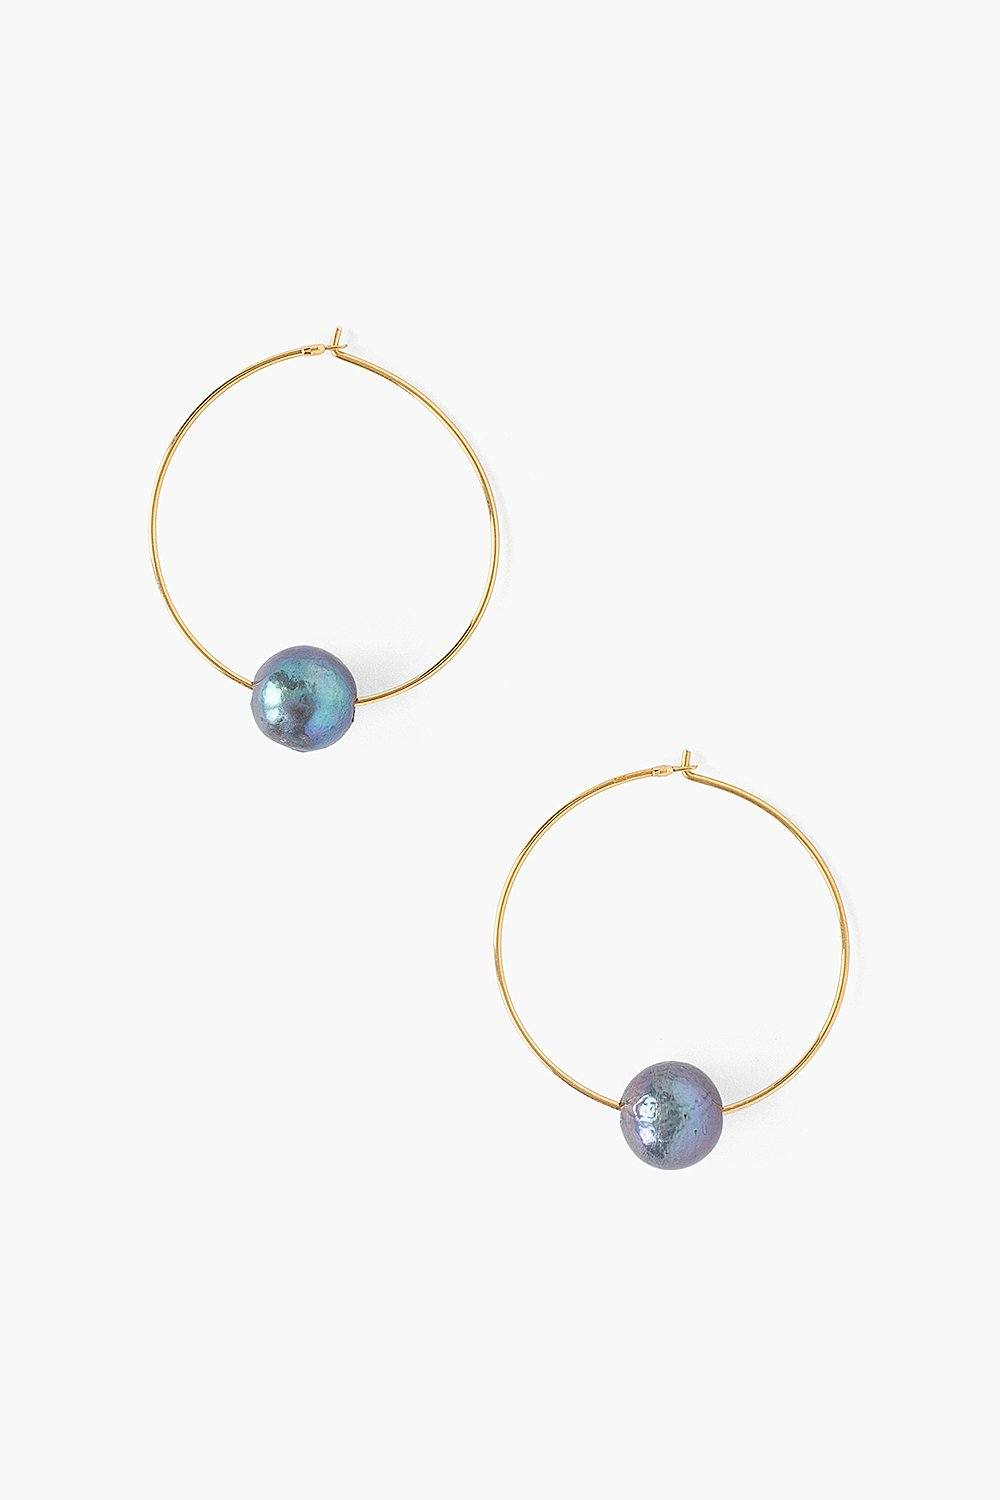 Peacock Blue Pearl and Gold Hoop Earrings